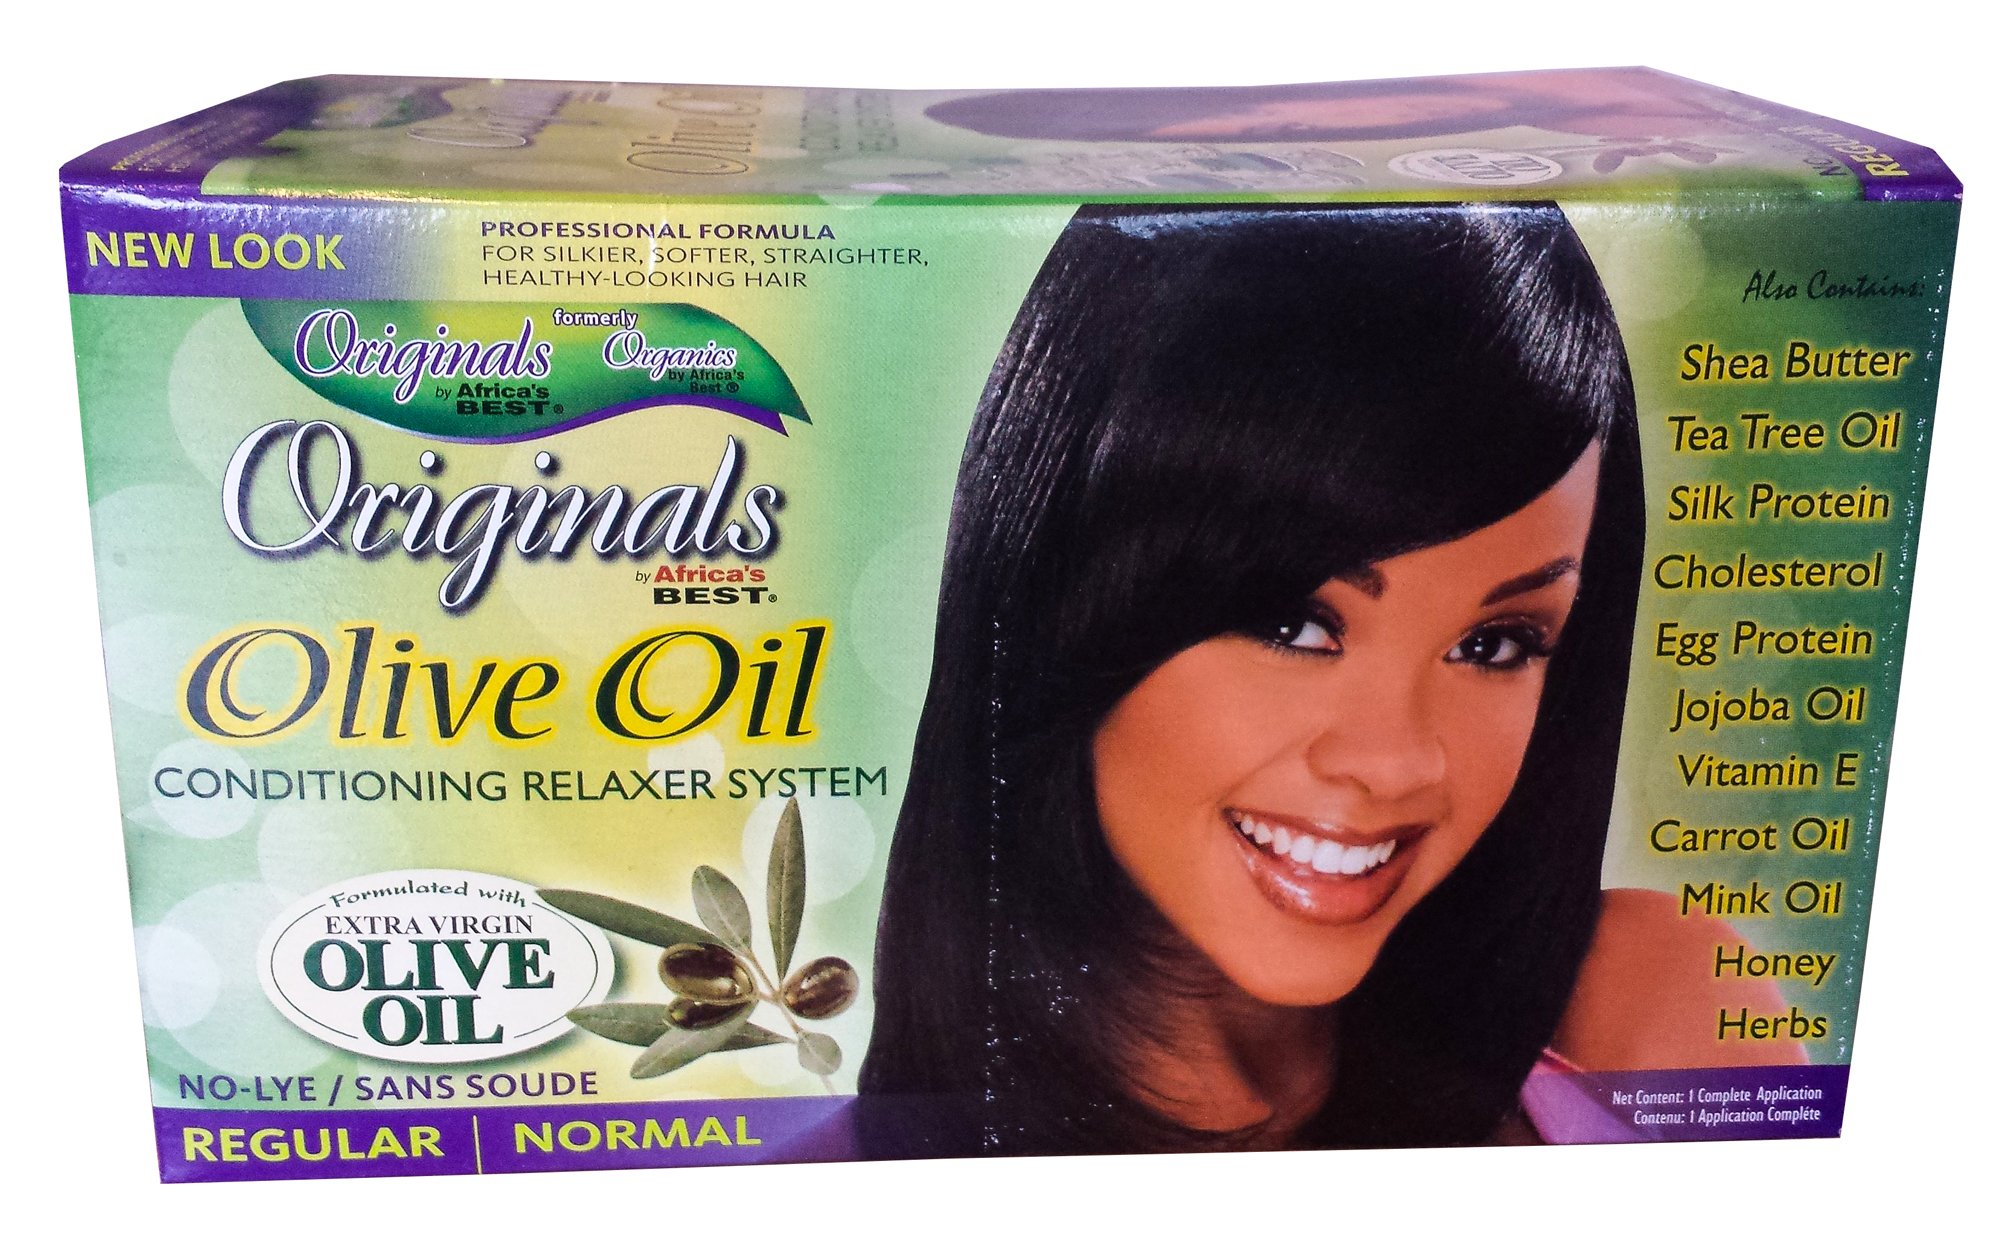 Africa's Best Originals Olive Oil Conditioning Relaxer System for Women, Regular/Normal